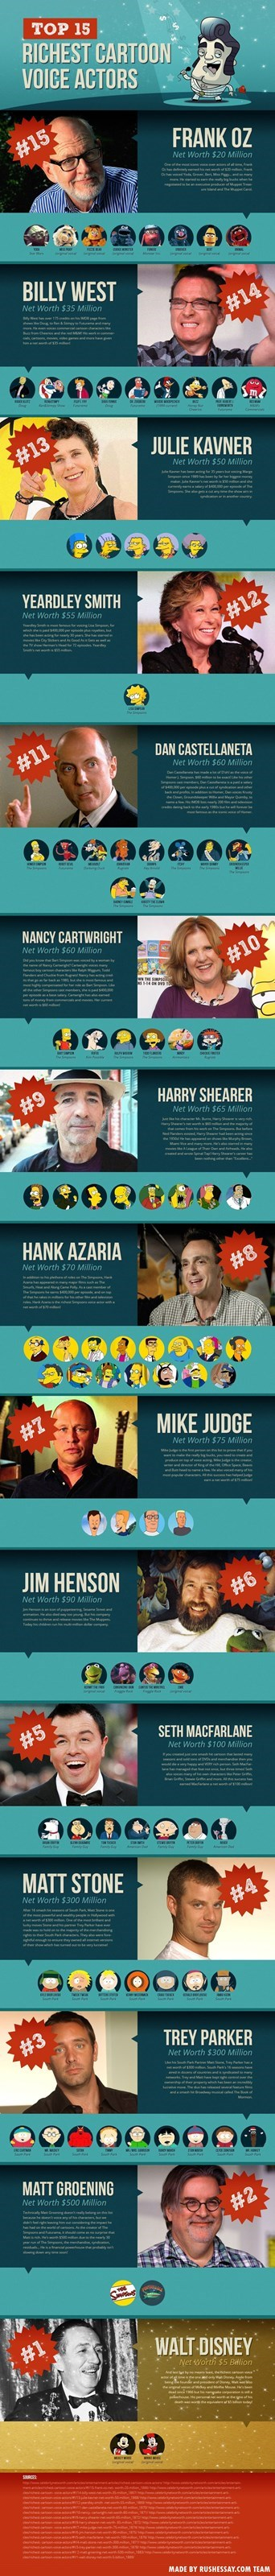 disney,muppets,South Park,voice acting,simpsons,futurama